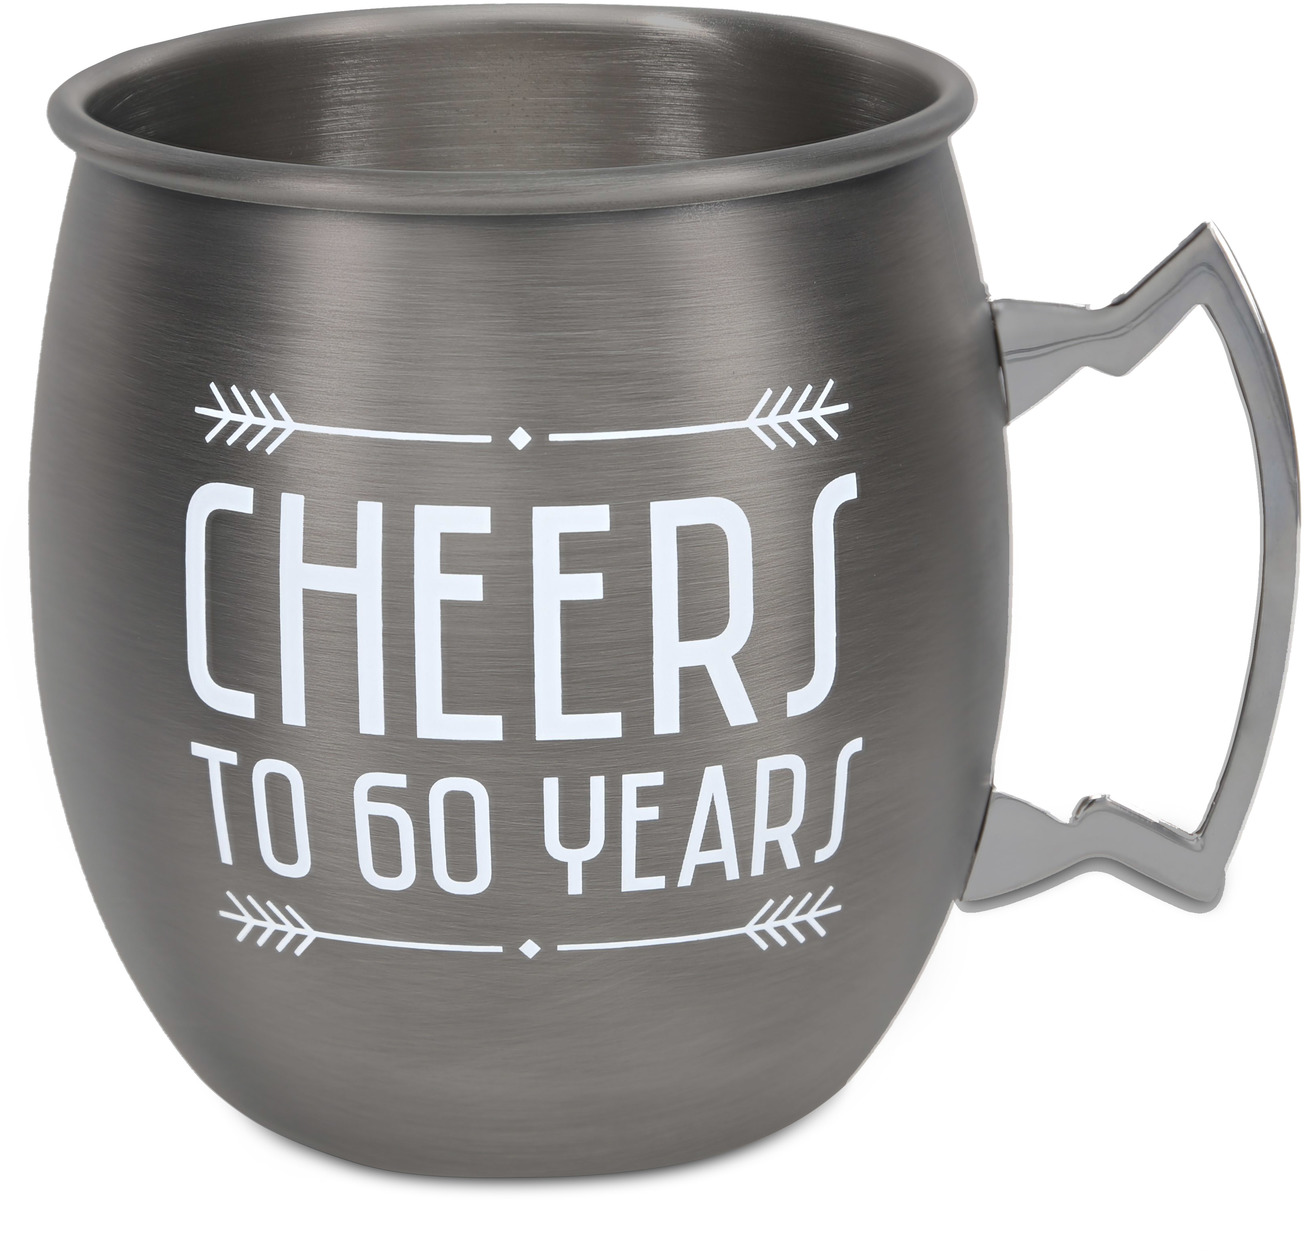 60 Years by Man Crafted - 60 Years - 20 oz Stainless Steel Moscow Mule